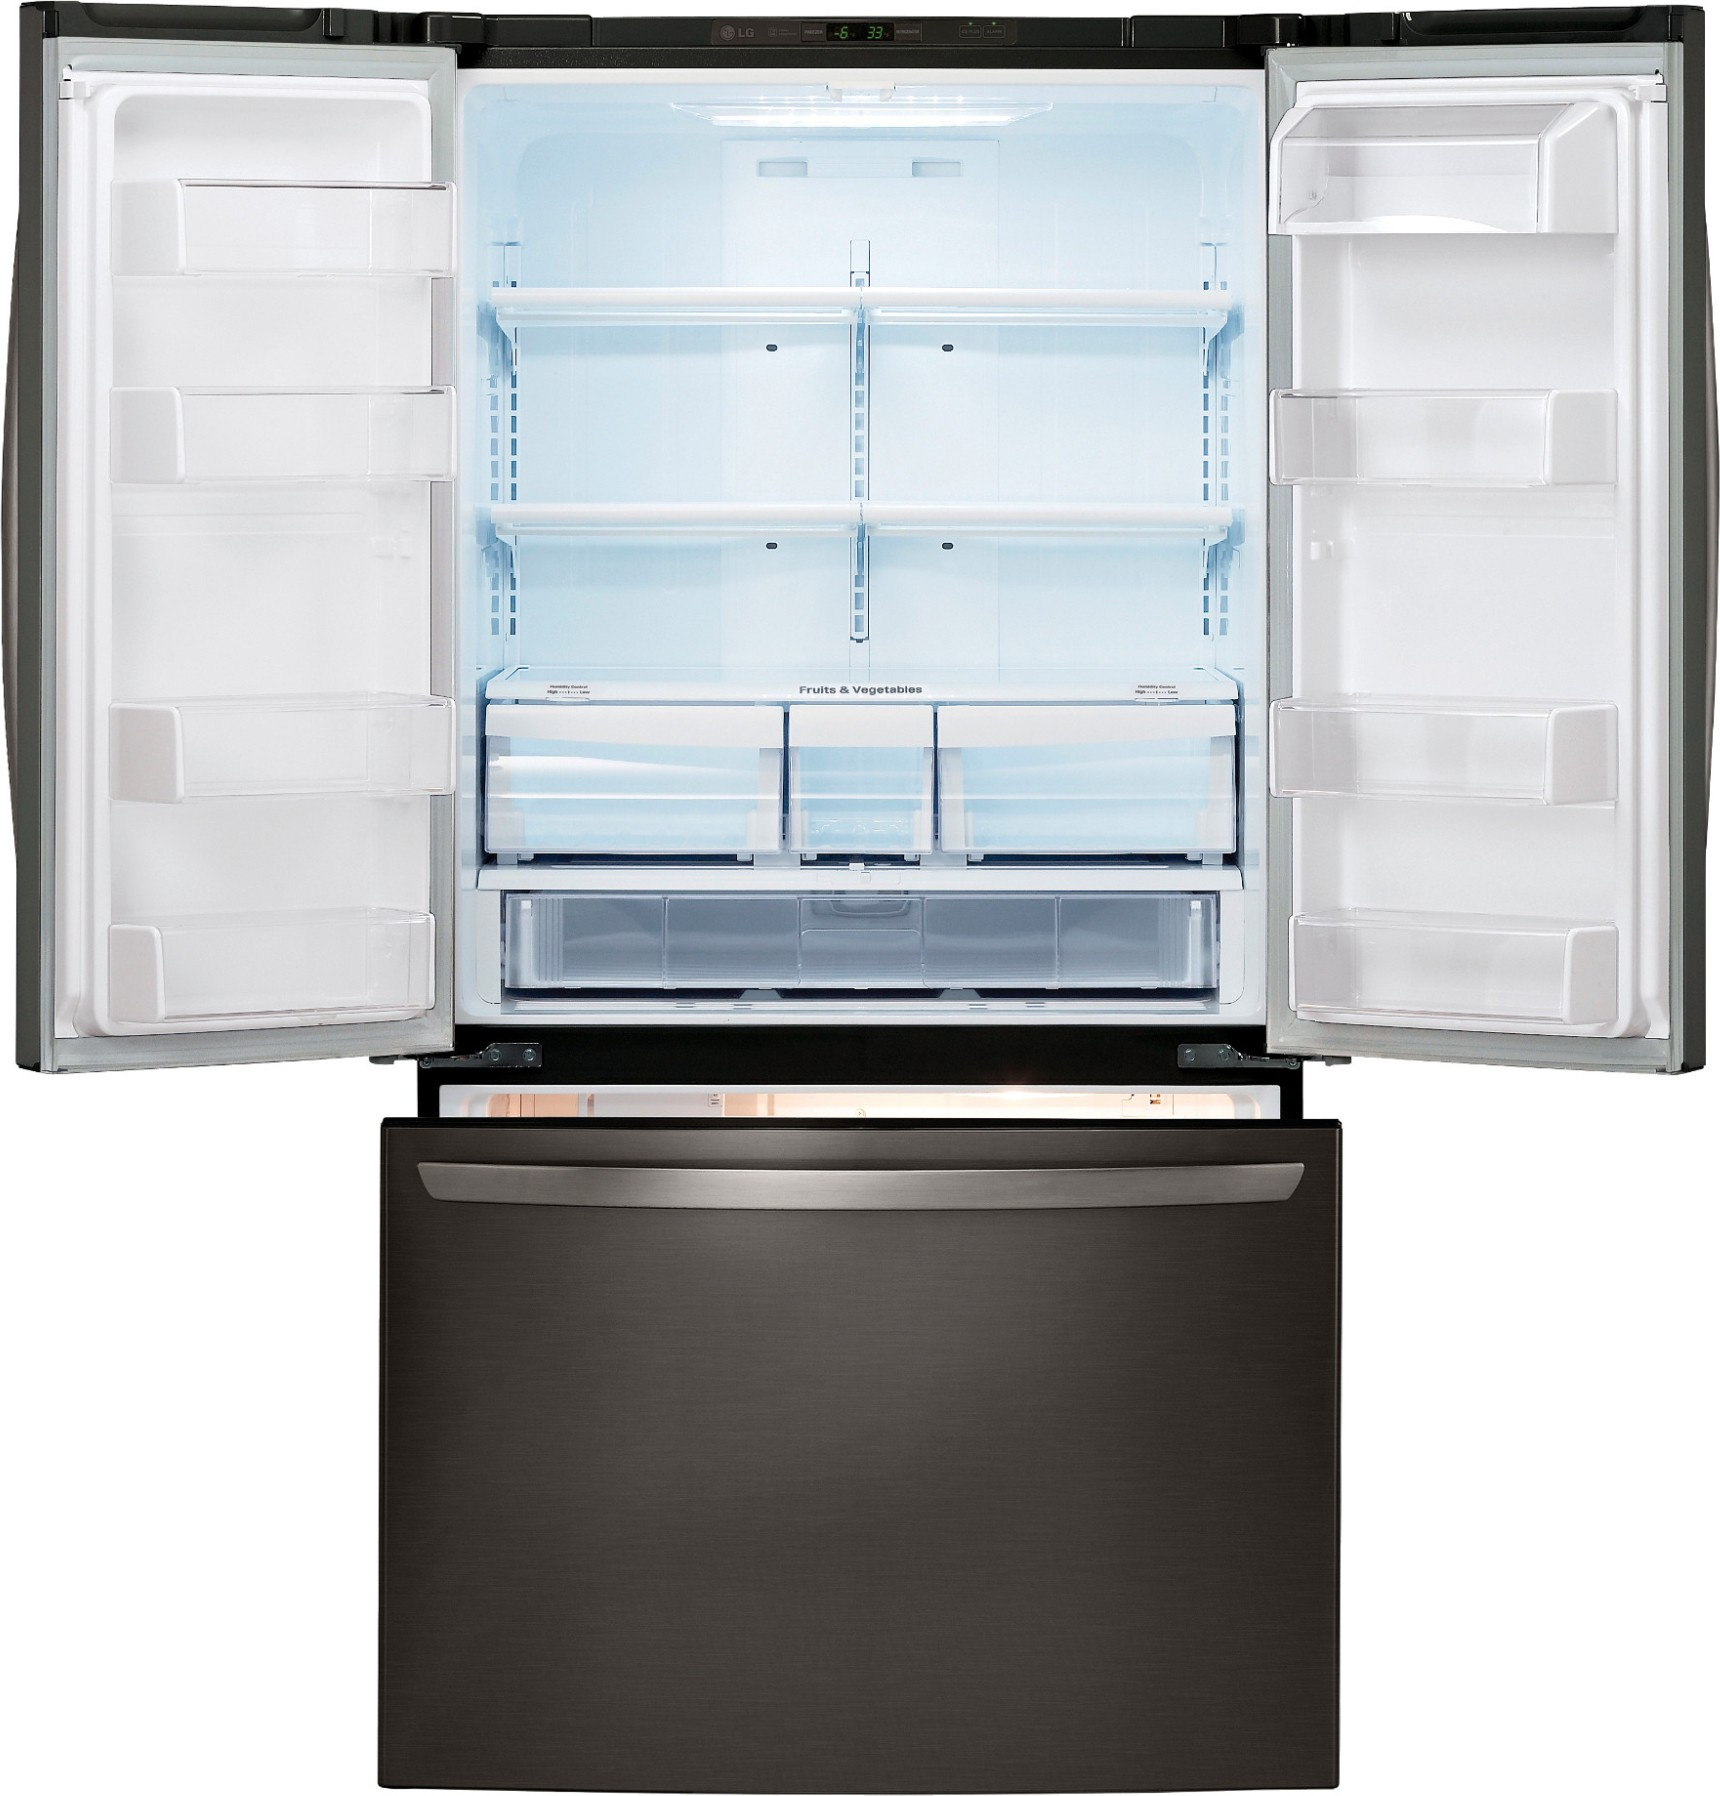 lg refrigerator black stainless. main feature lg refrigerator black stainless